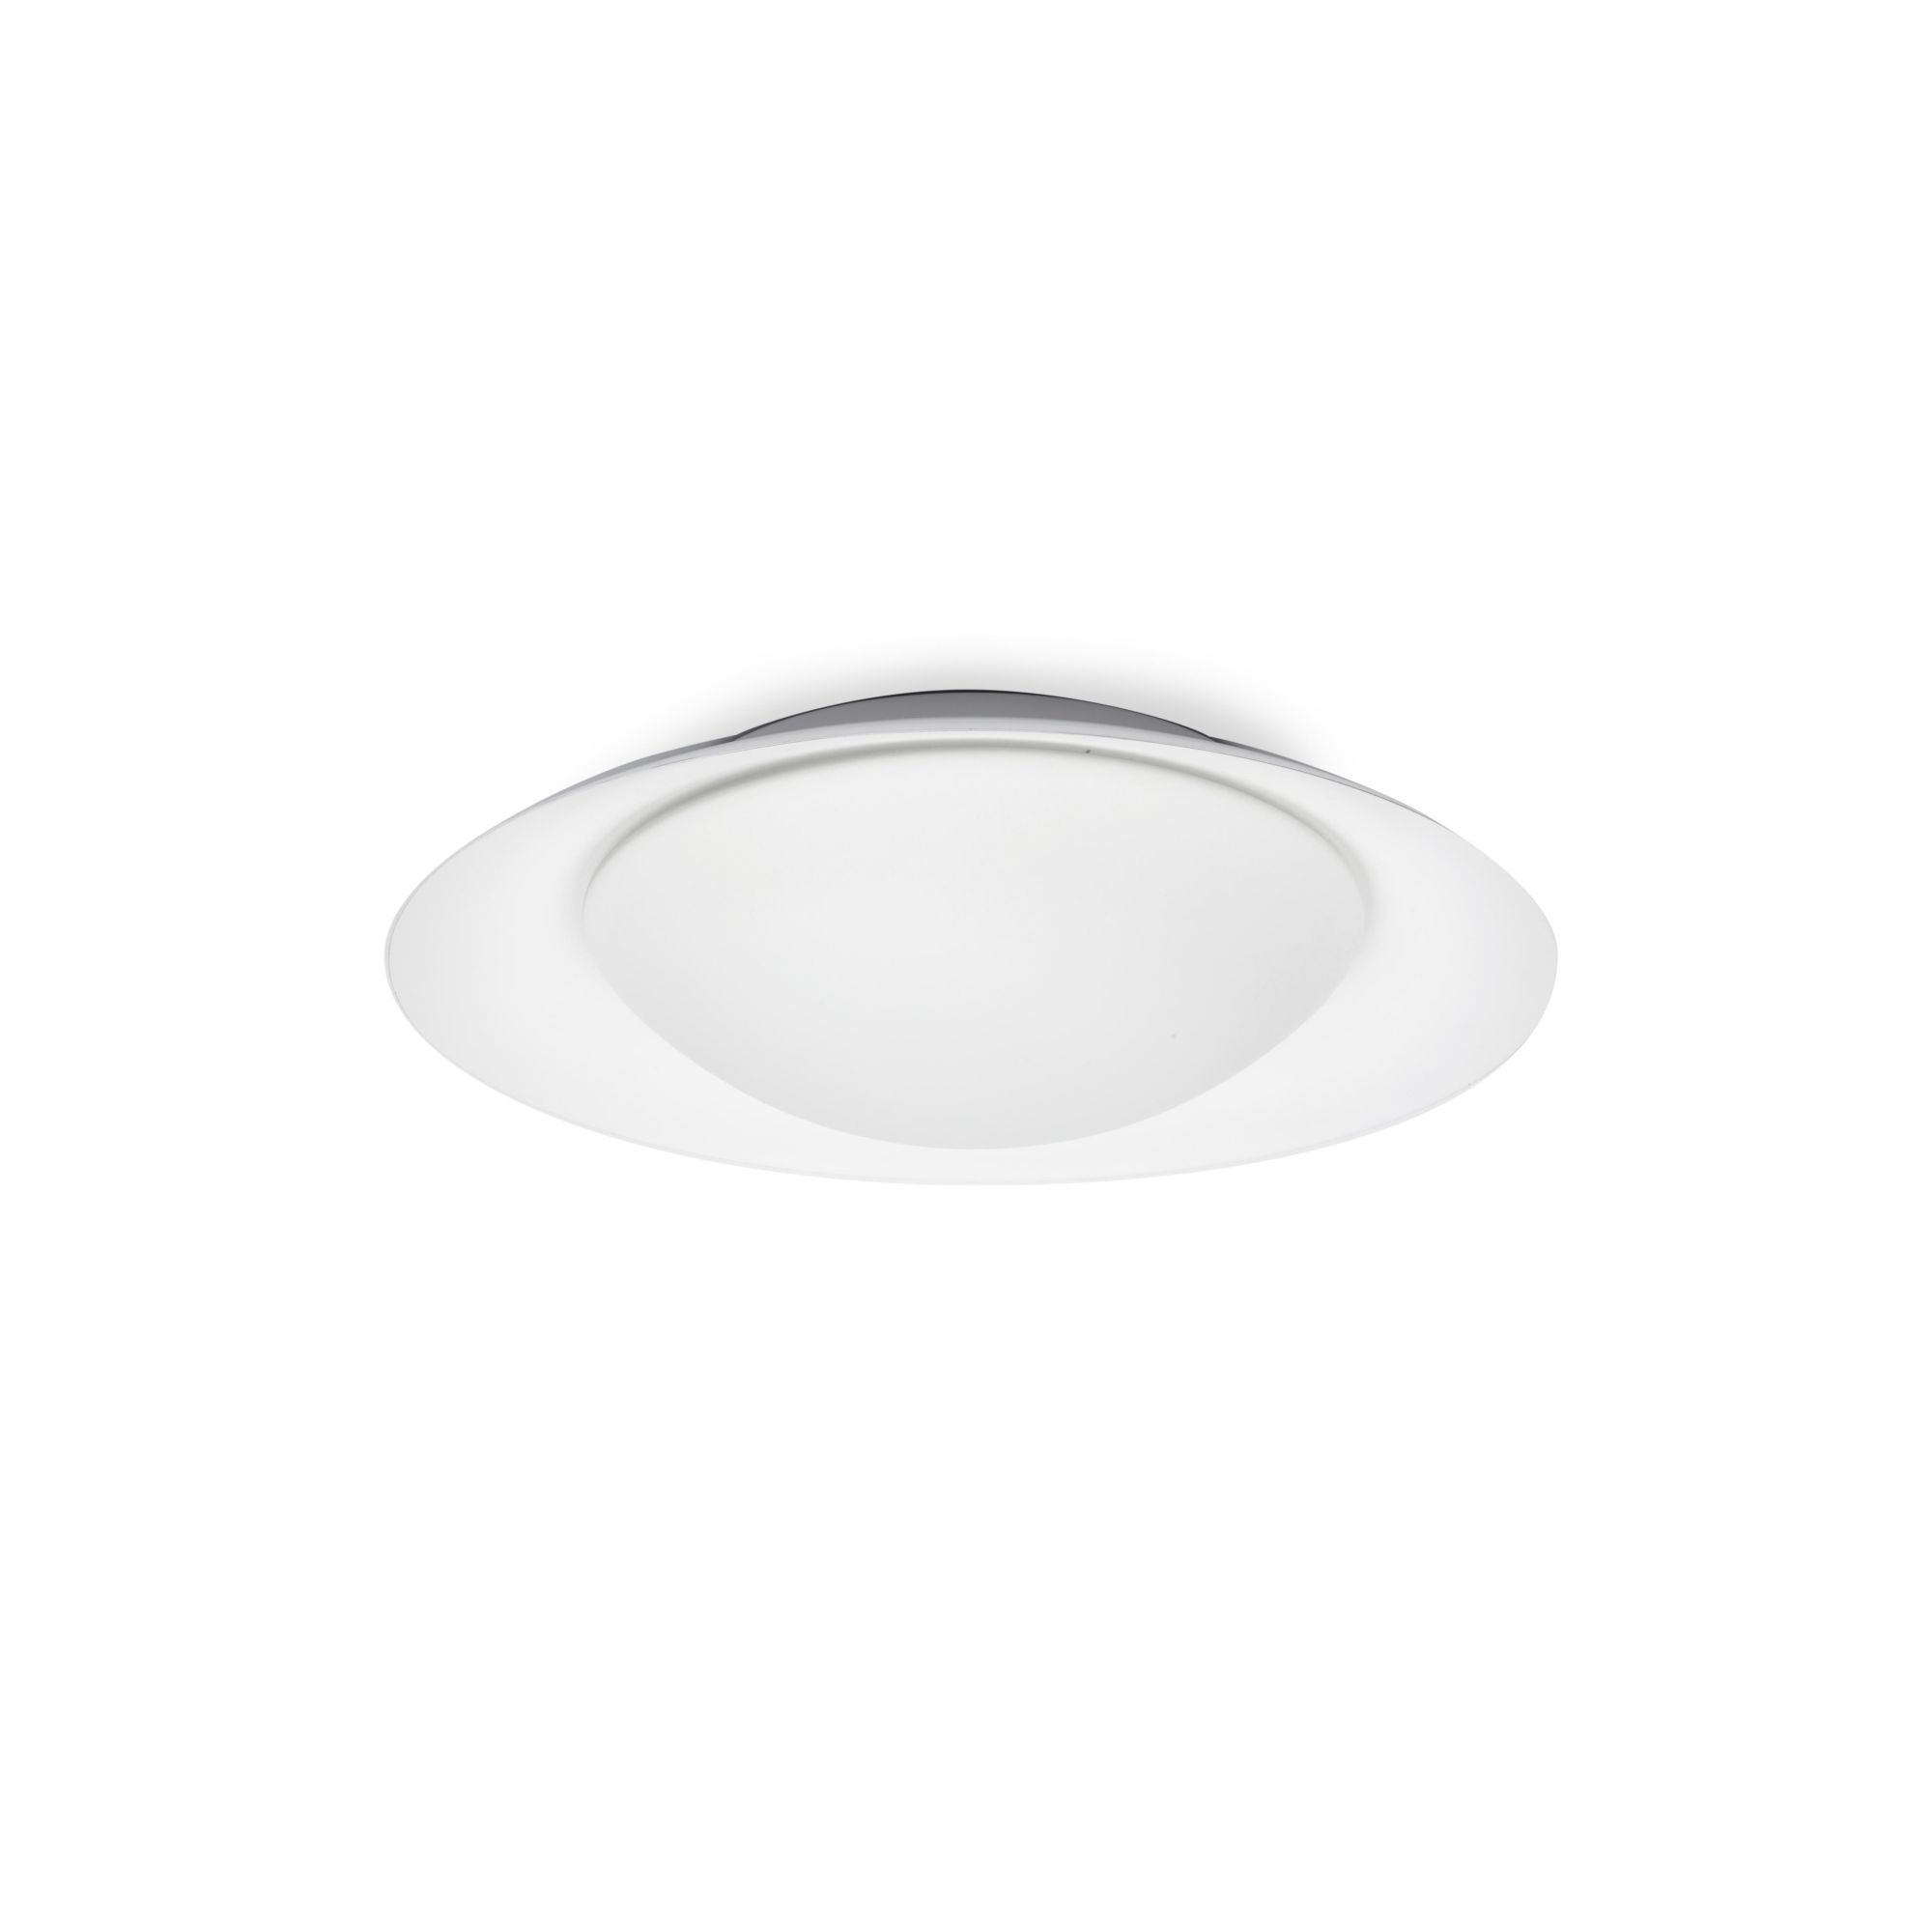 SIDE PLAFON Ø390 BLANCO/BLANCO LED 15W 3000K